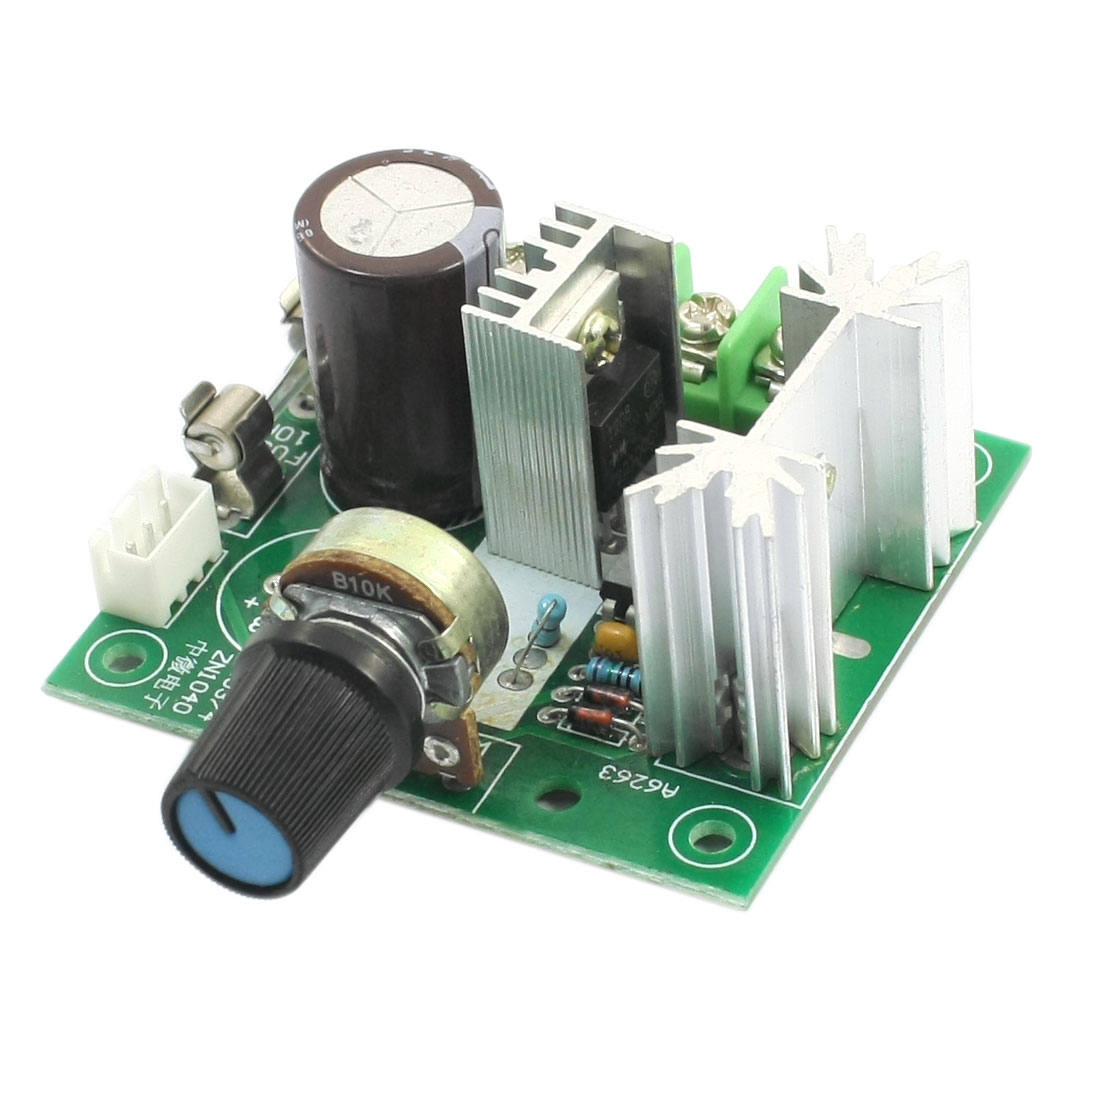 DC5-15V 200W 13KHz Potentiometer Control PWM Motor Rotary Speed Governor Regulator Module w 10A Fuse